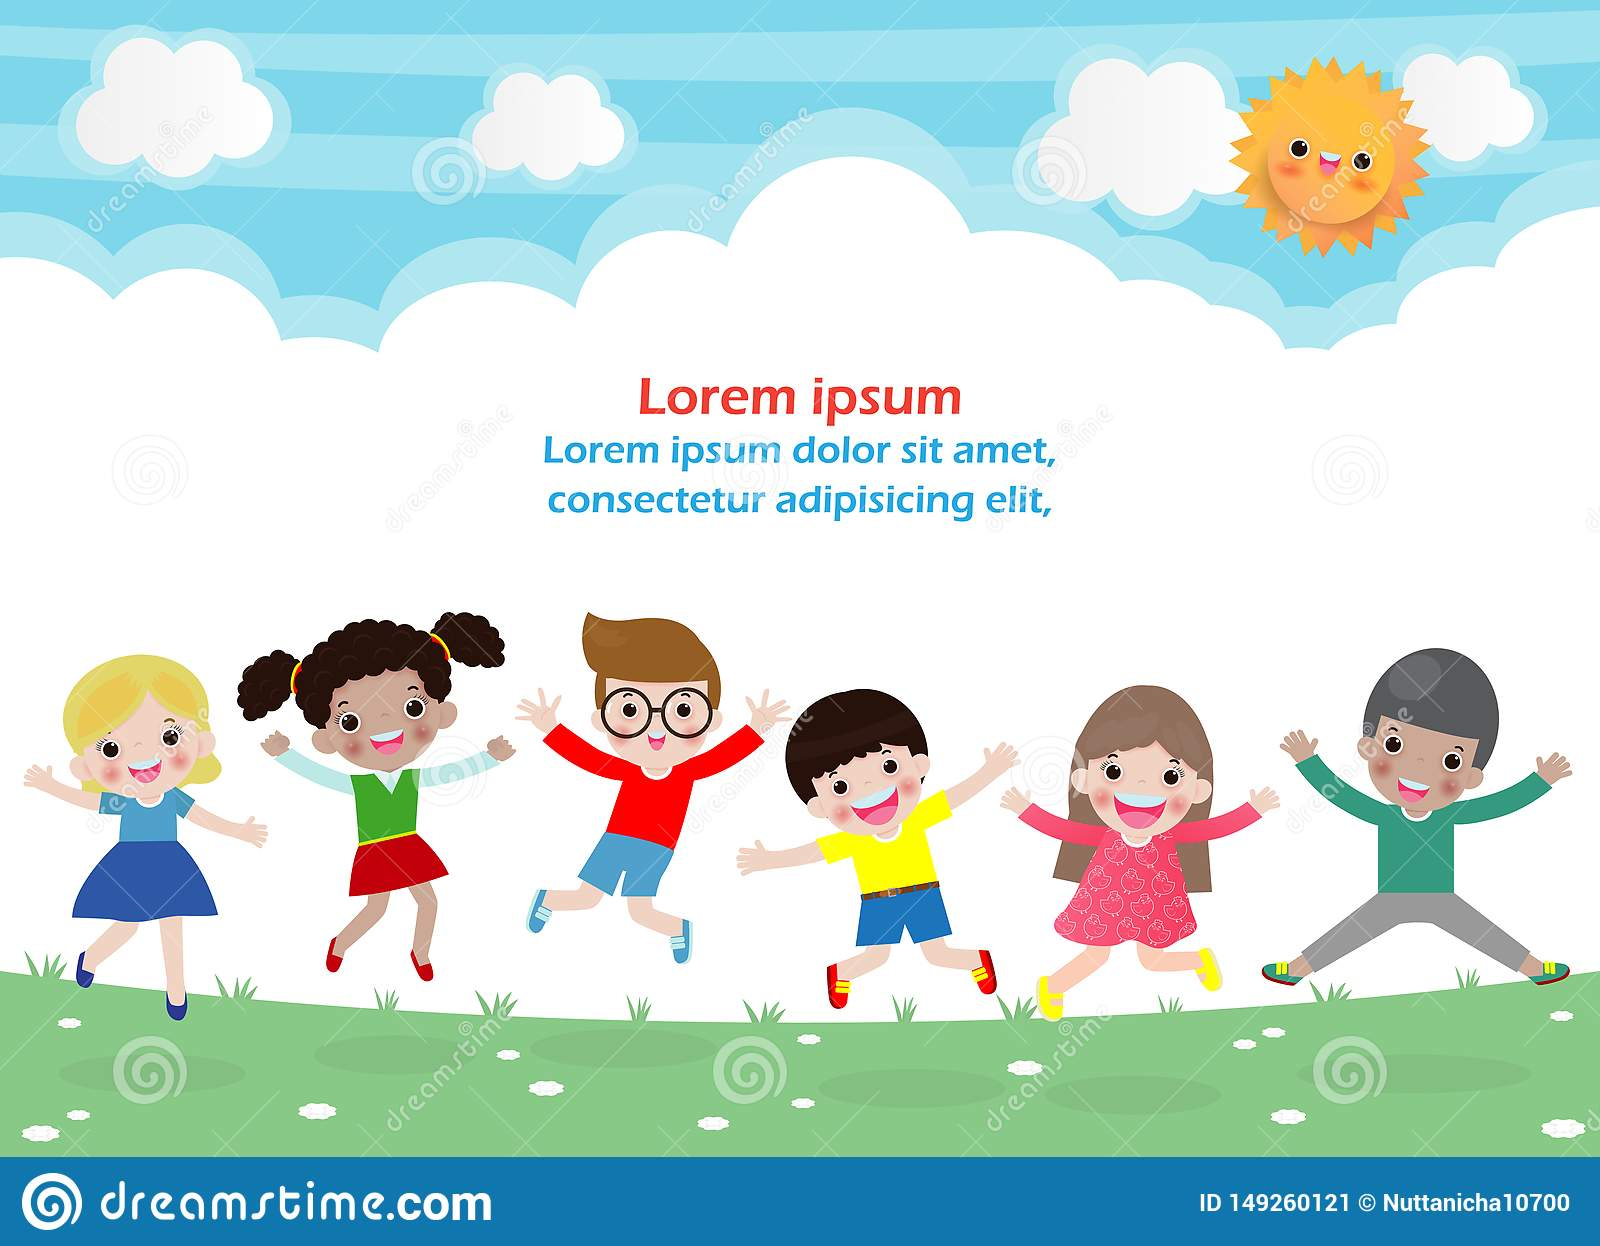 Kids jumping on the park, children jump with joy, happy cartoon child playing on the playground, isolated background Template